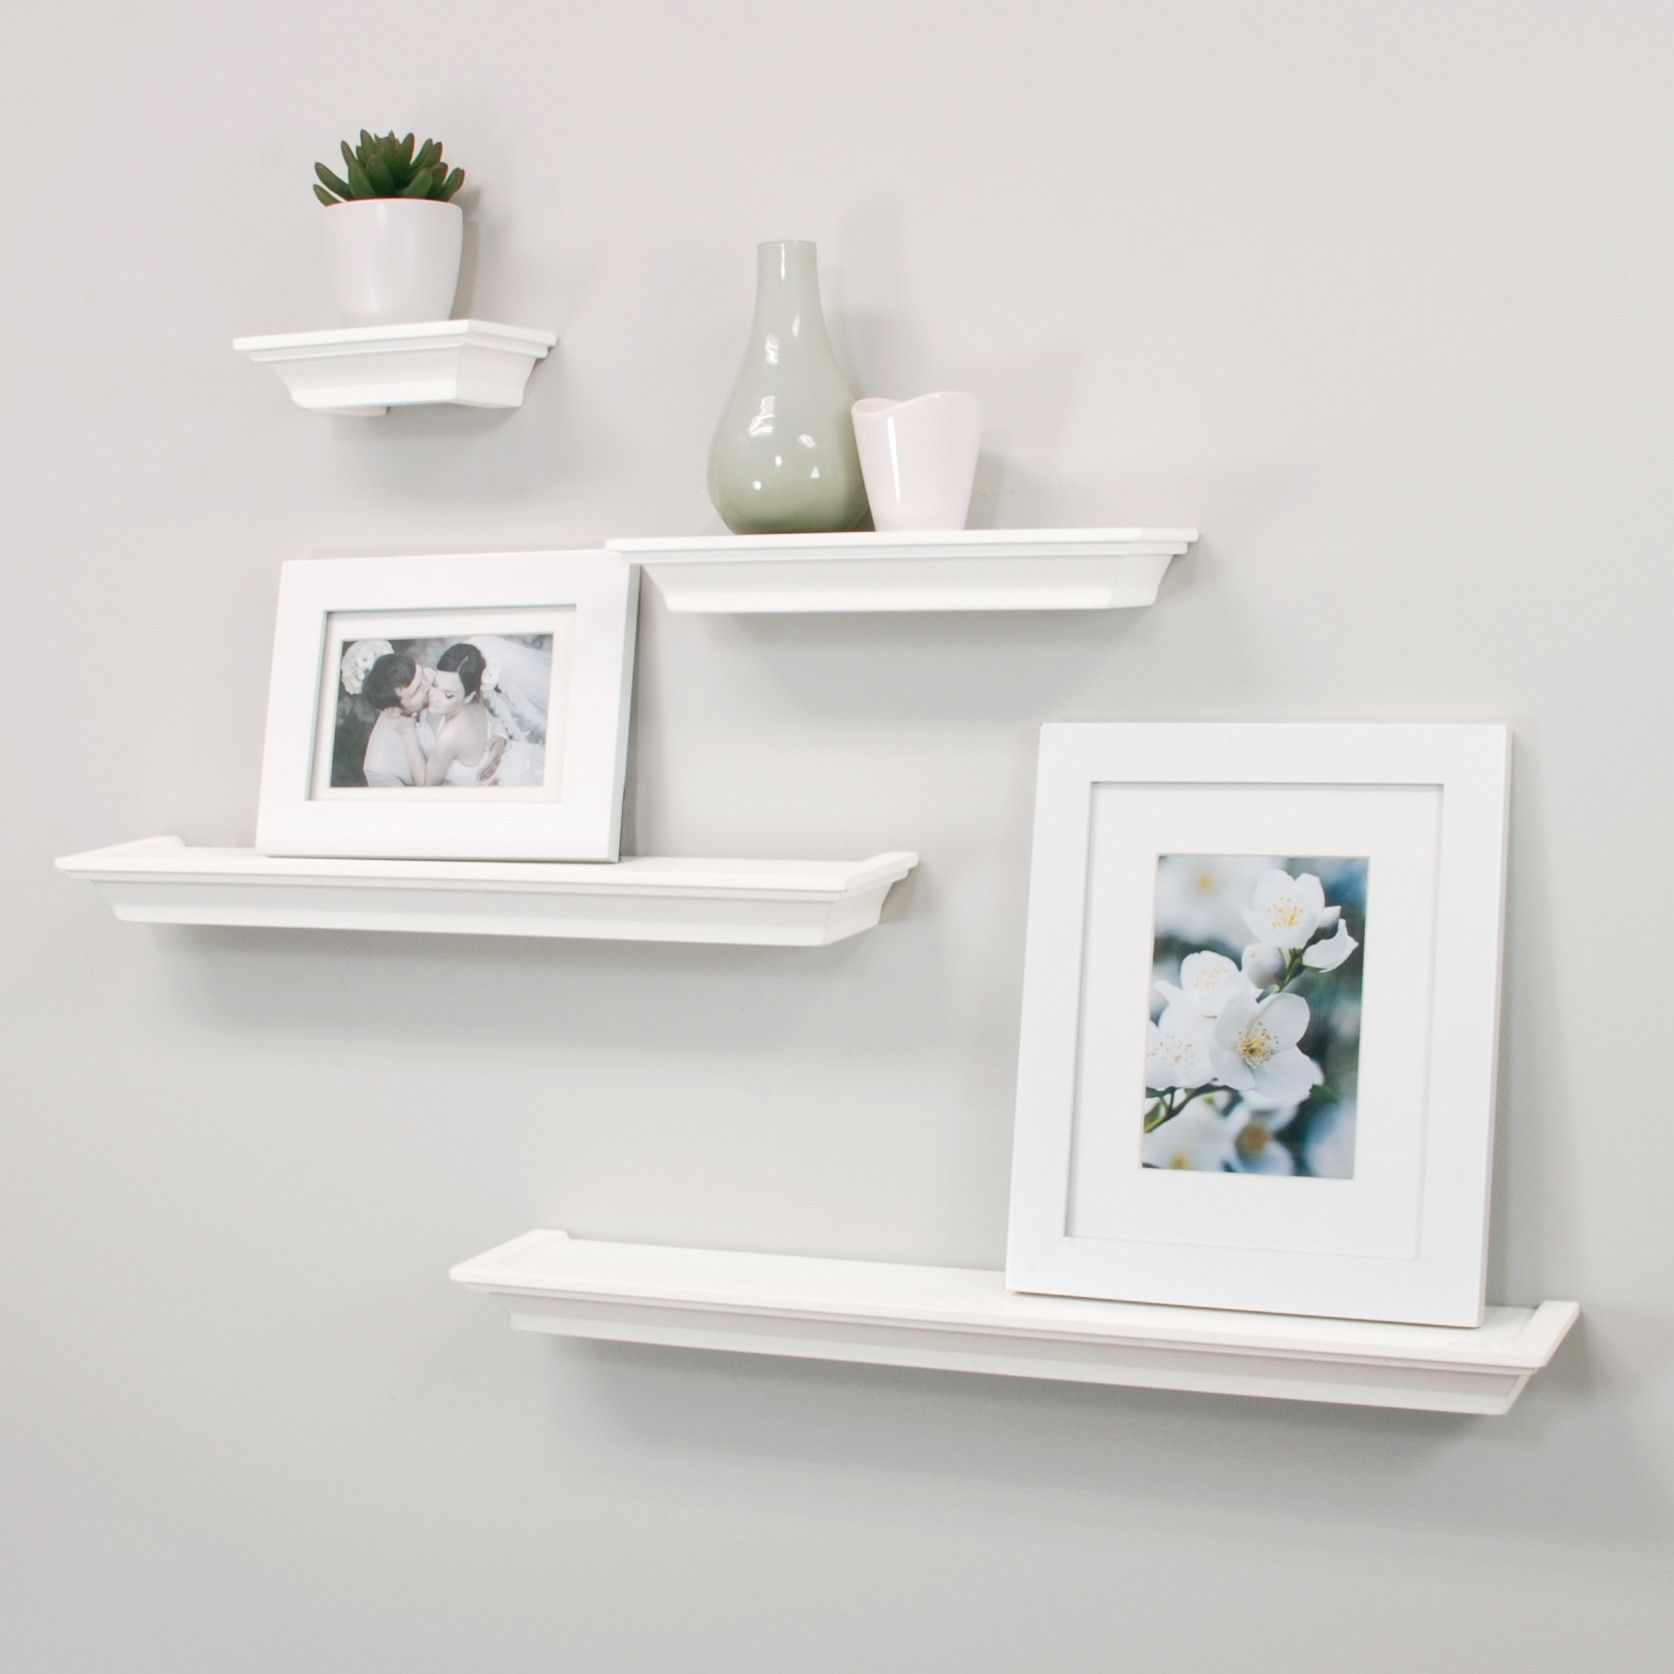 Melannco Floating Shelves Classy Features Set Of Four Contoured Ledge Style Shelvingvarious Review